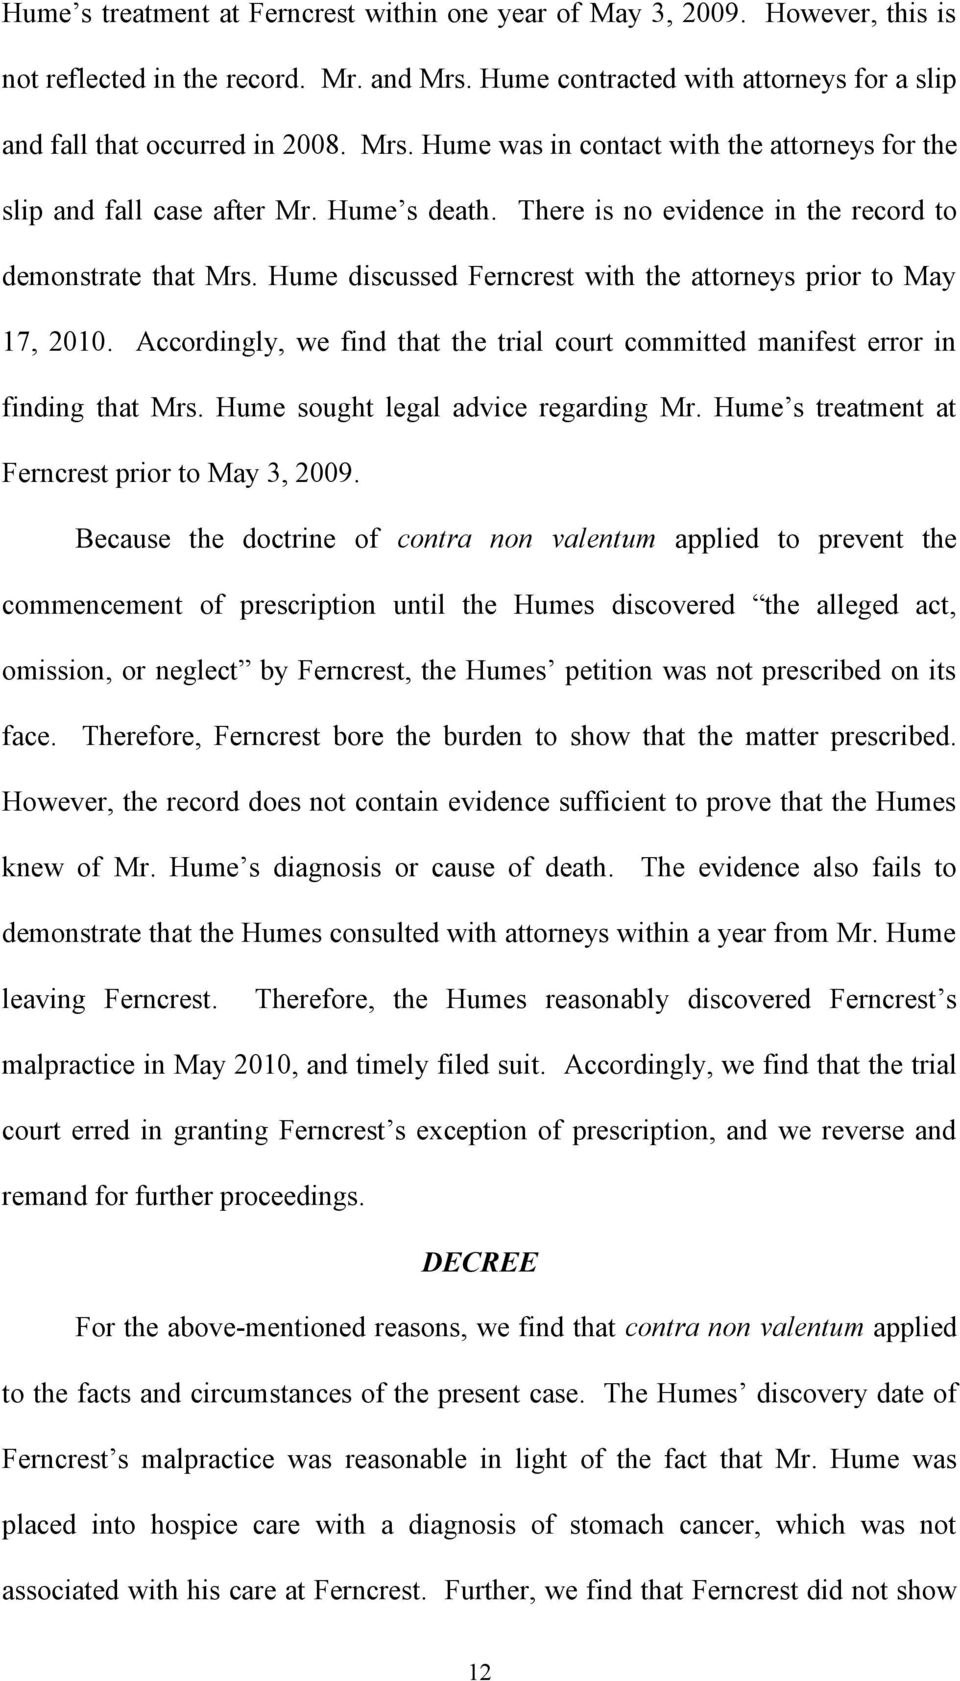 Accordingly, we find that the trial court committed manifest error in finding that Mrs. Hume sought legal advice regarding Mr. Hume s treatment at Ferncrest prior to May 3, 2009.